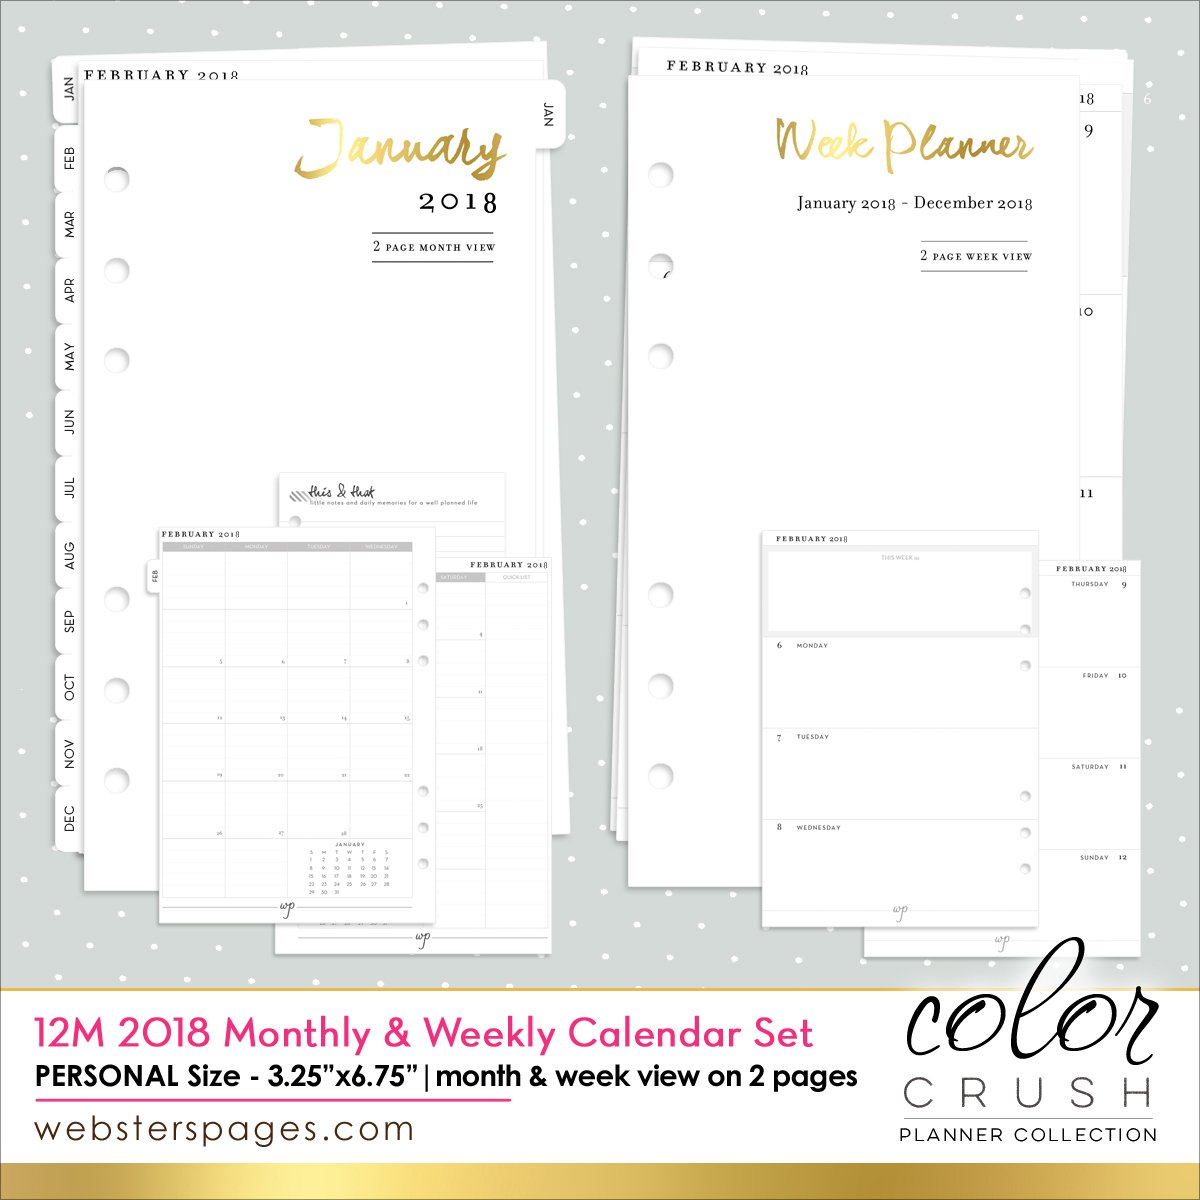 Webster's Pages Personal Size 2018 12-Month Week and Month Calendar (P1034)